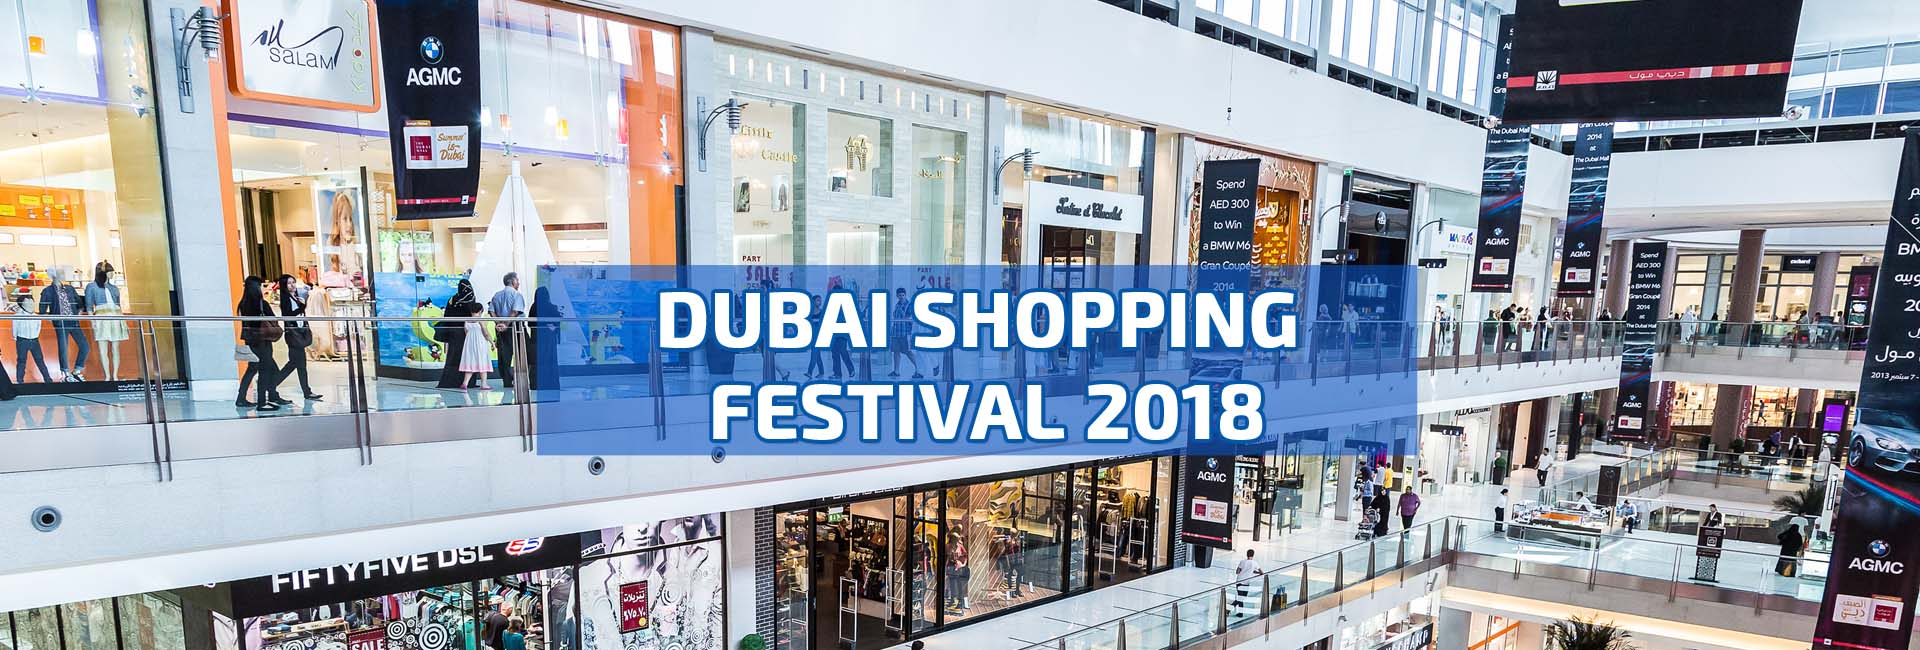 dubai shopping festival 2018 packages dsf 2018 tours holidays. Black Bedroom Furniture Sets. Home Design Ideas